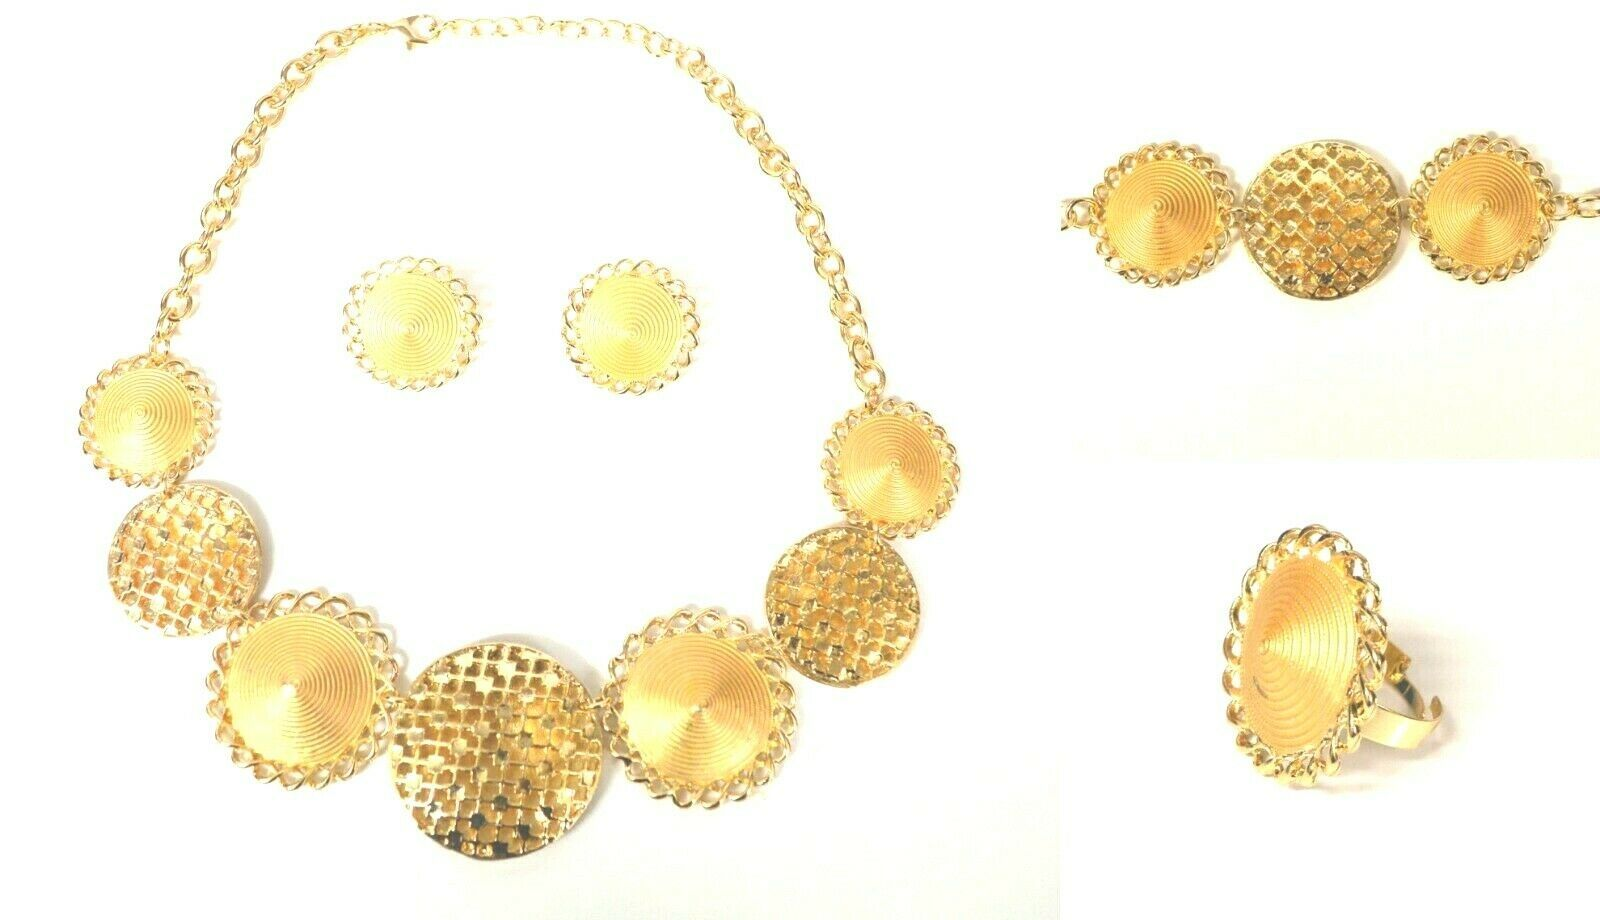 Primary image for STATEMENT CHUNKY GLAM CIRCLE VINTAGE FOUR PIECE JEWELLERY NECKLACE SET GOLD